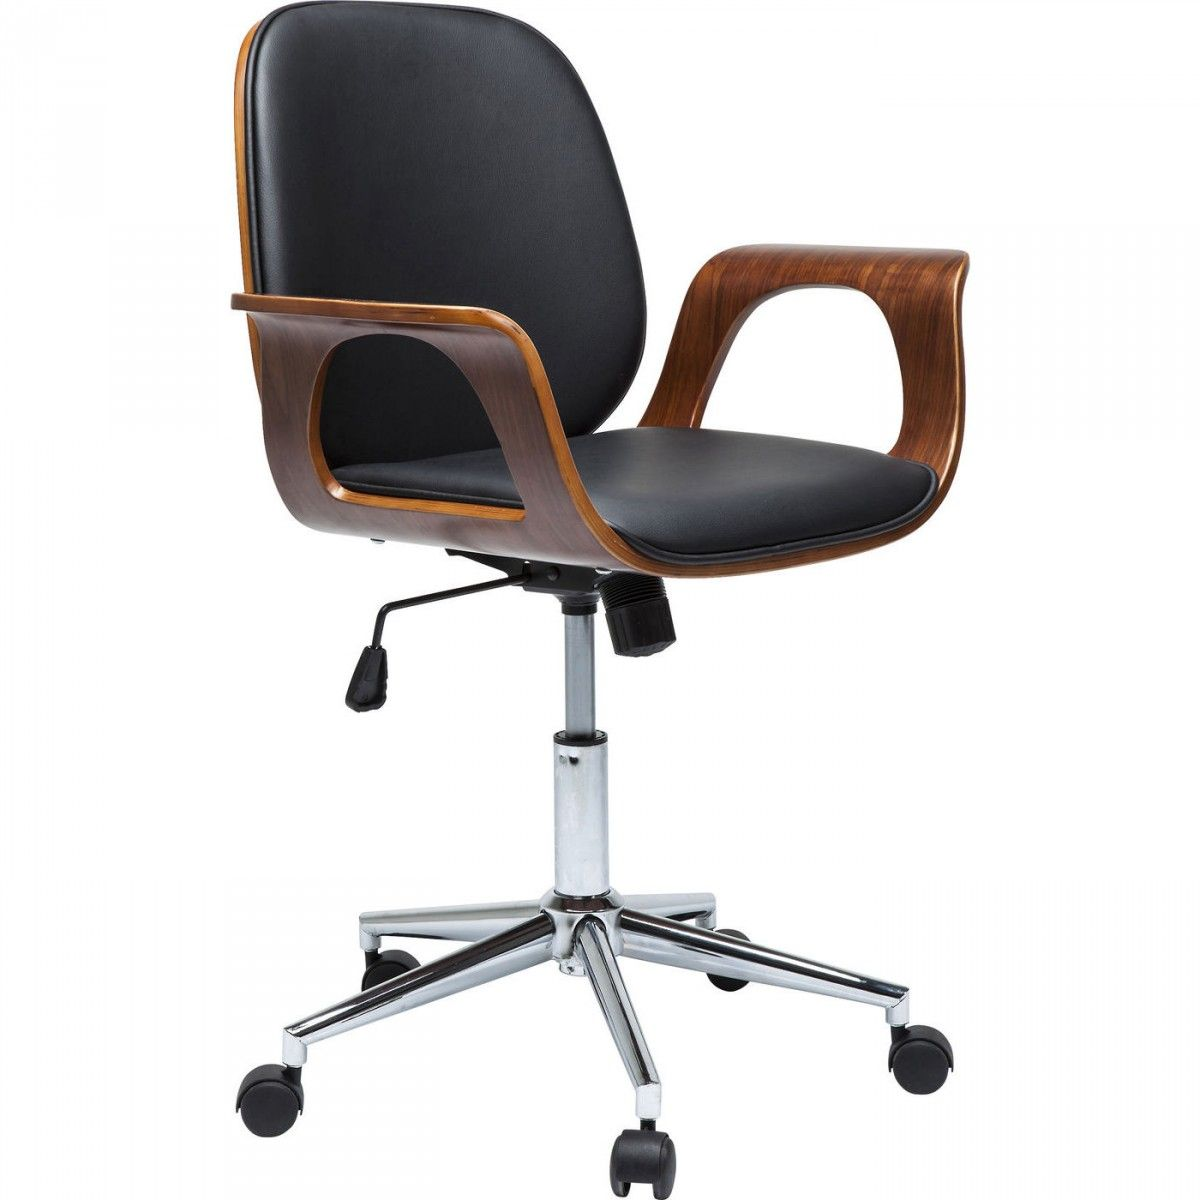 Silla Giratoria Patron Walnut With Images Office Chair Kare